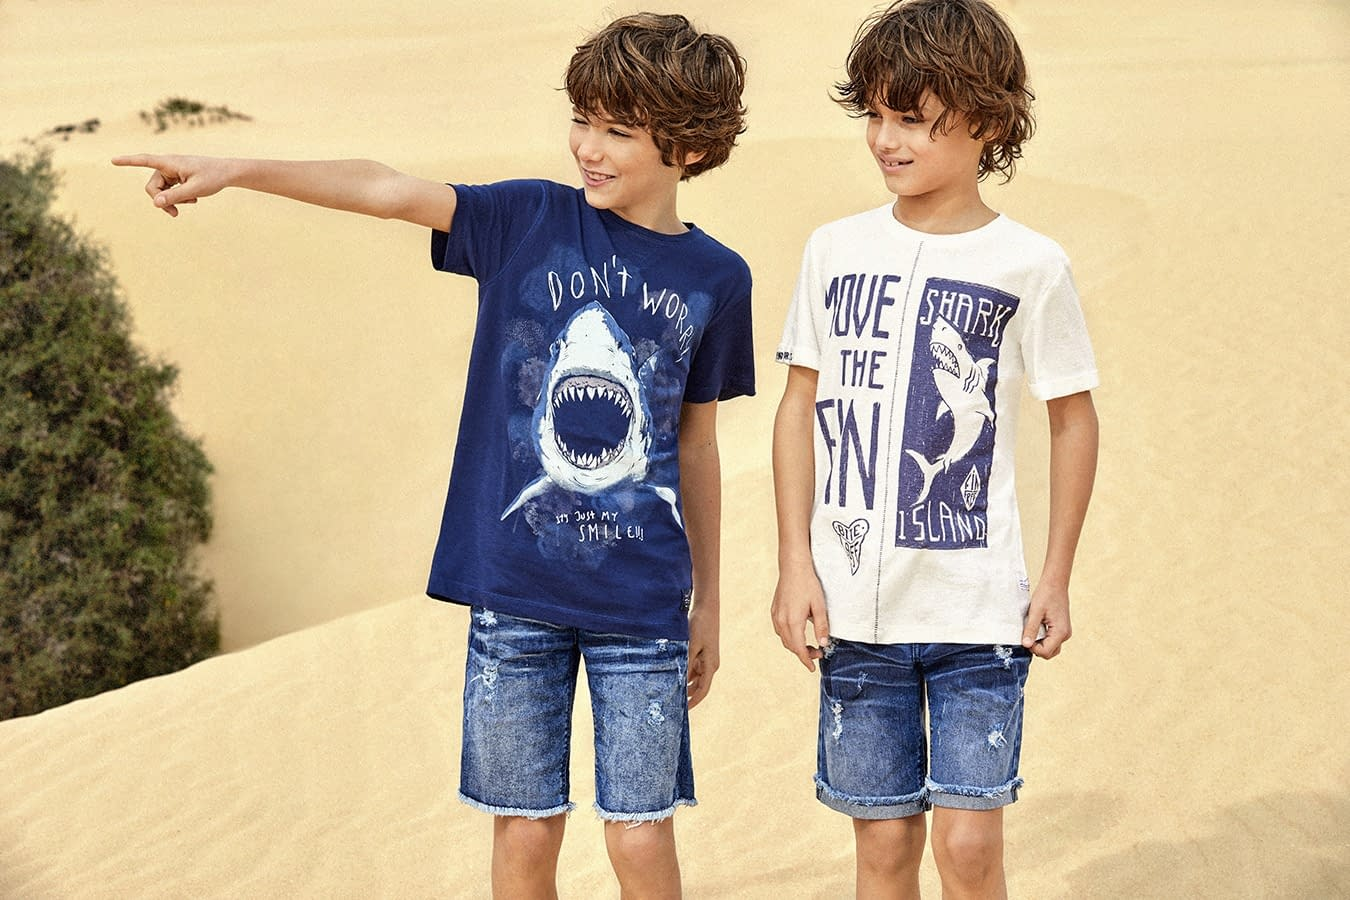 LEFTIES KIDS SS18 1 PHOTO BY ENRIC GALCERAN